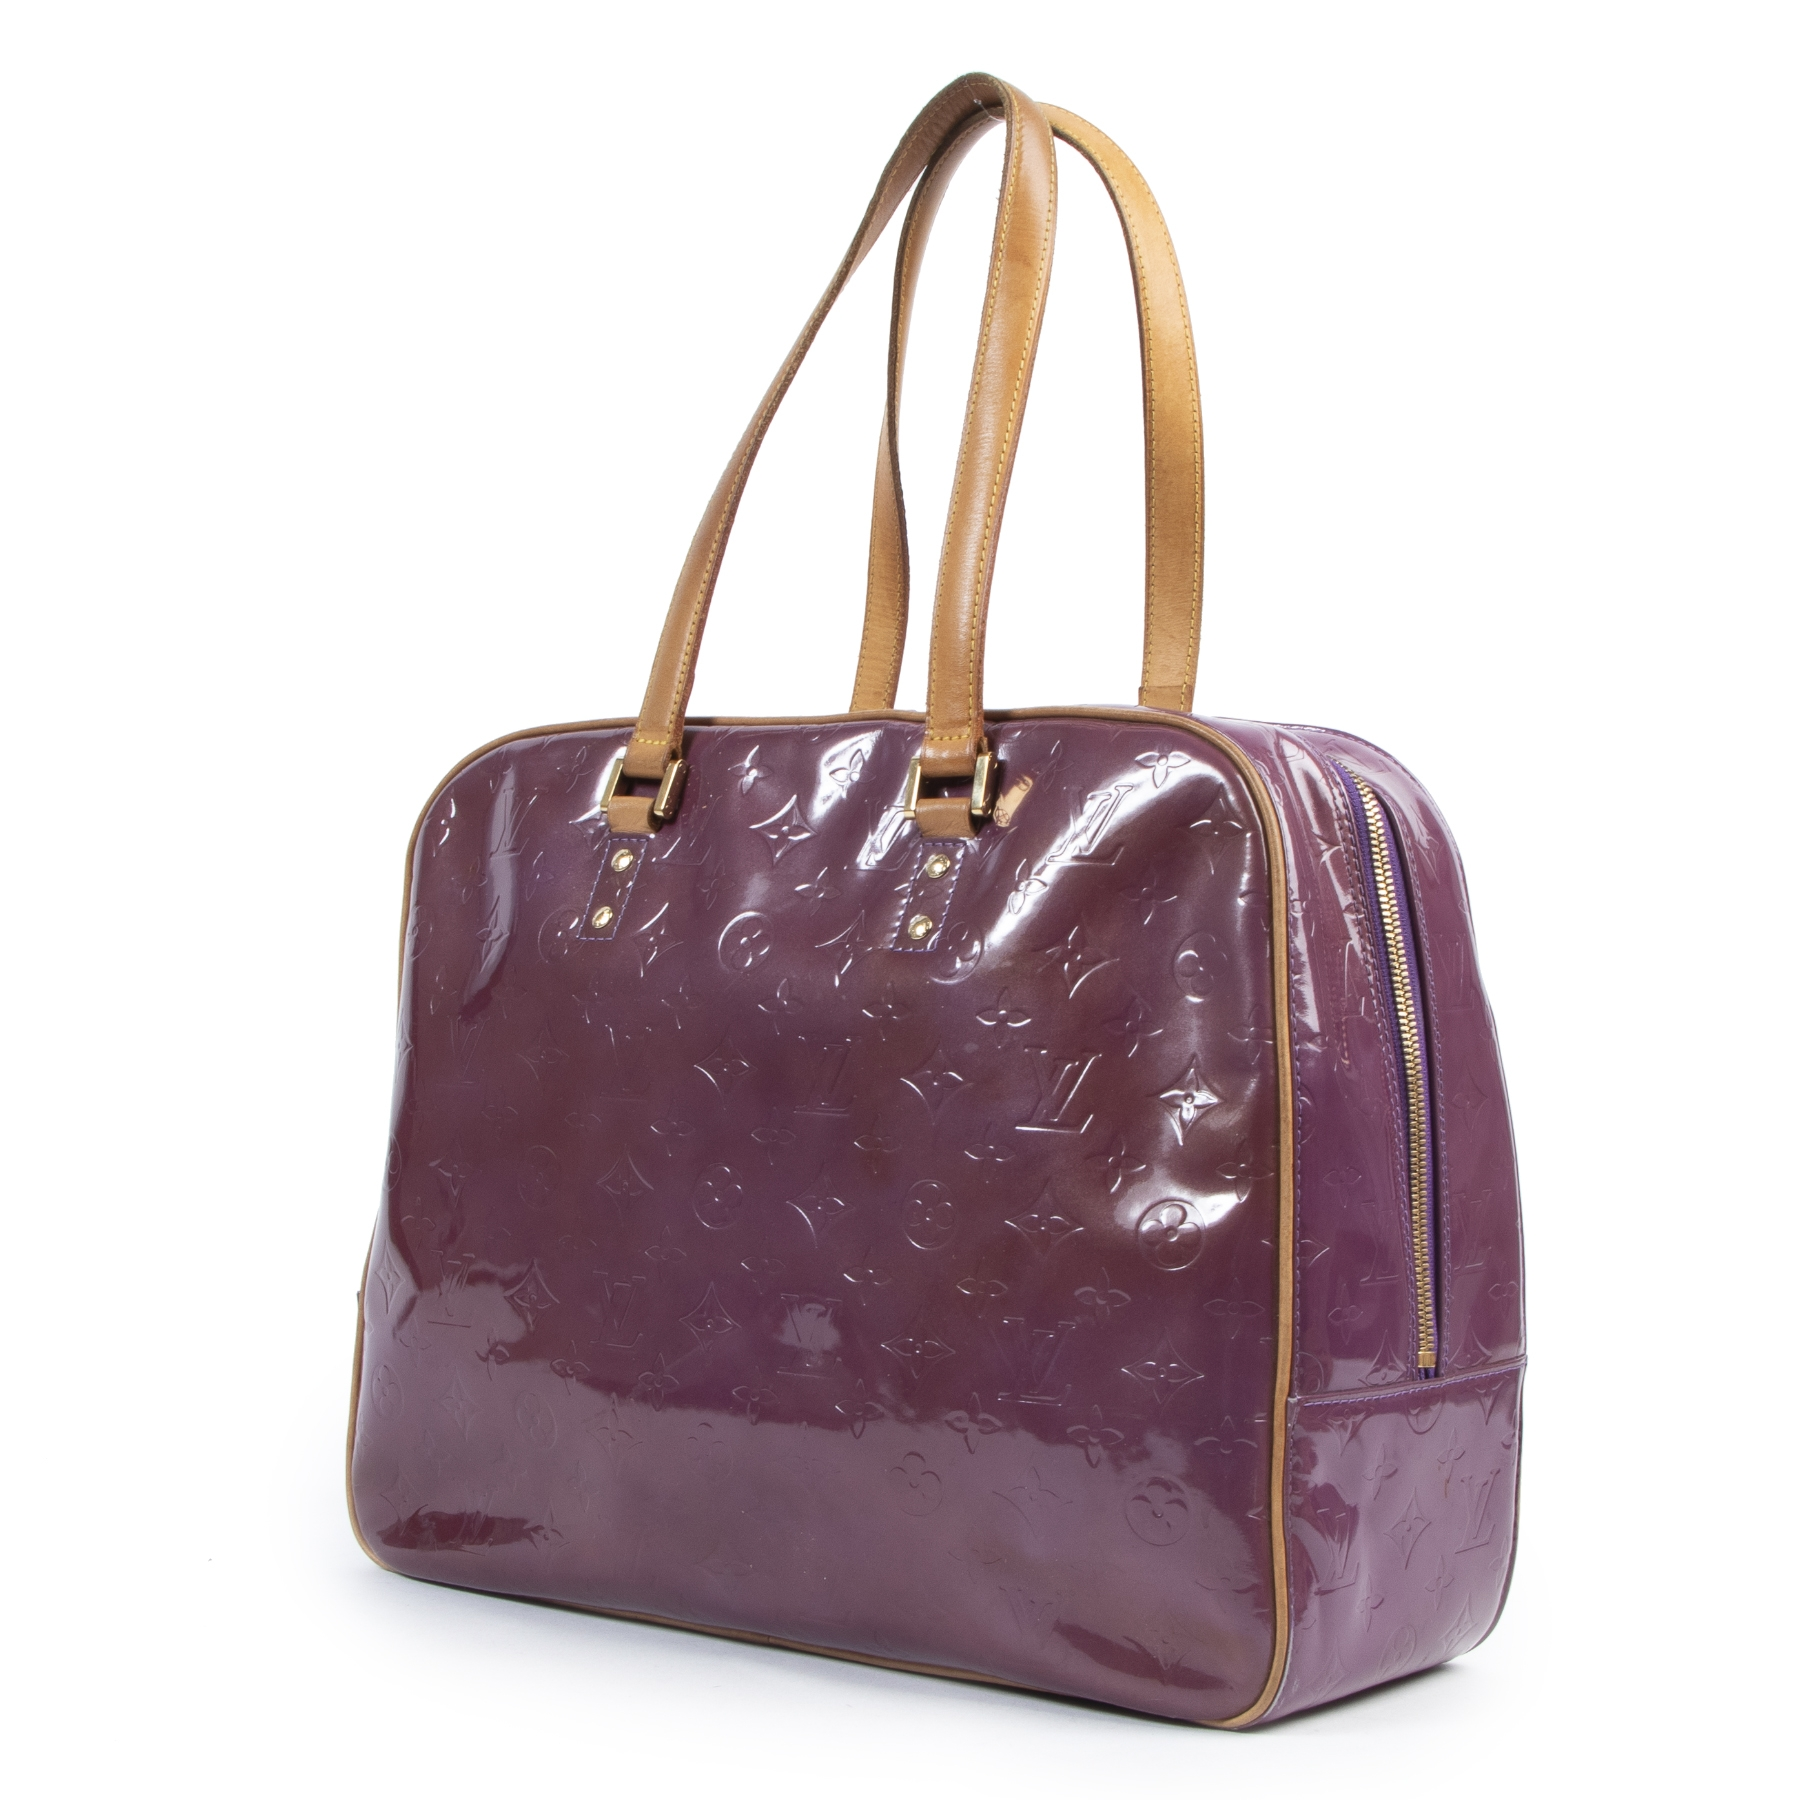 Louis Vuitton Purple Vernis Sutton Bag